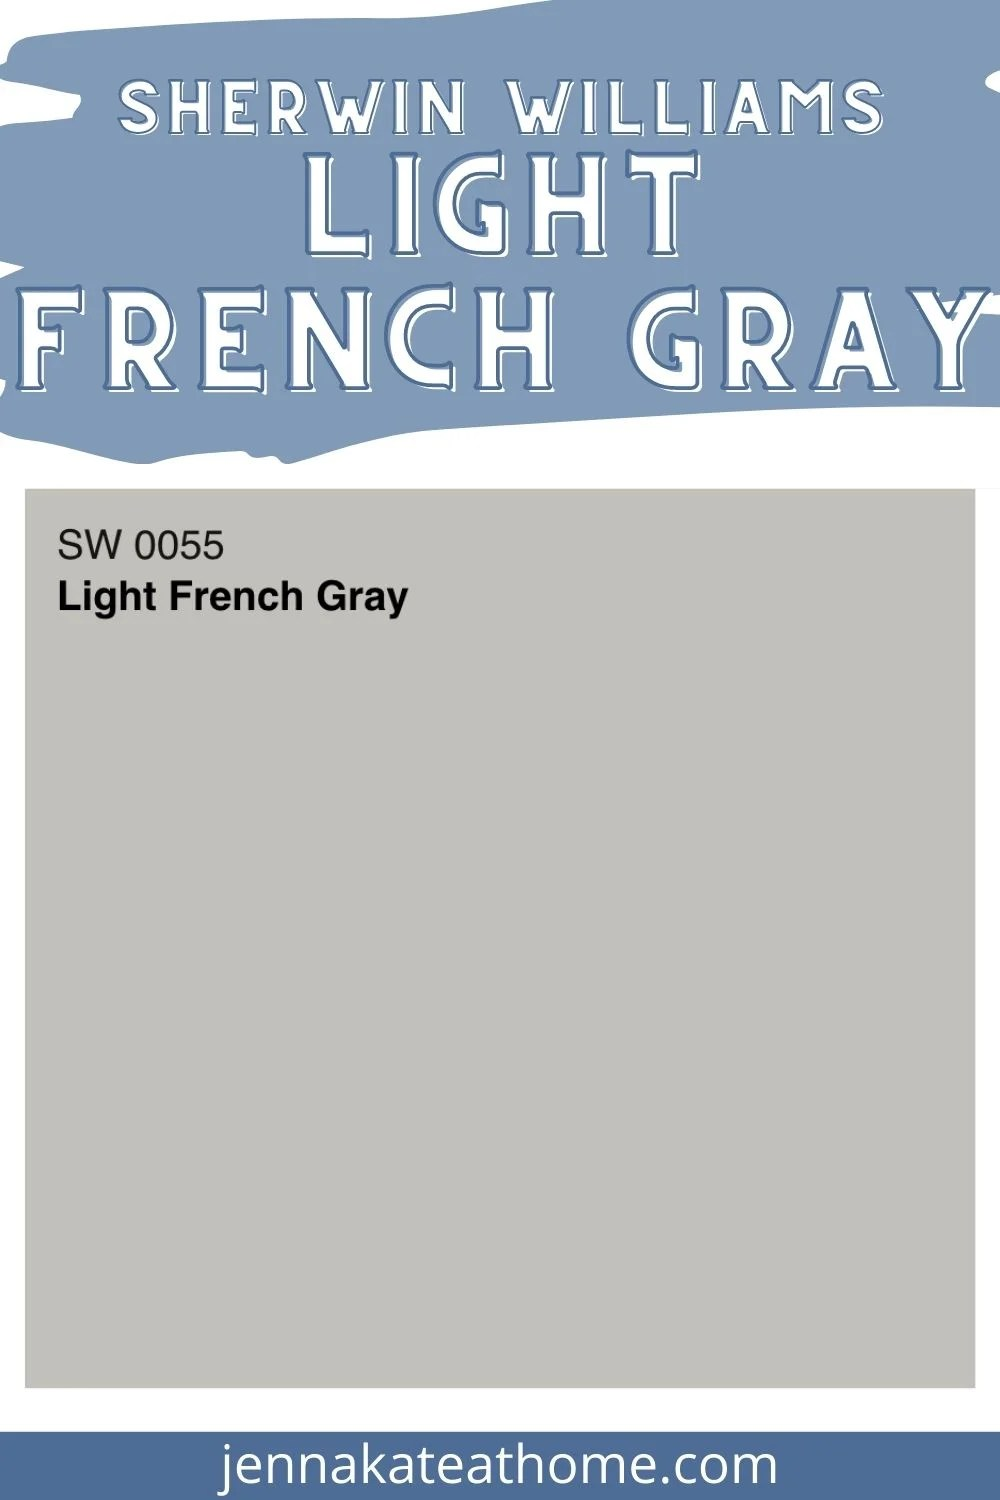 sherwin williams light french gray pin image